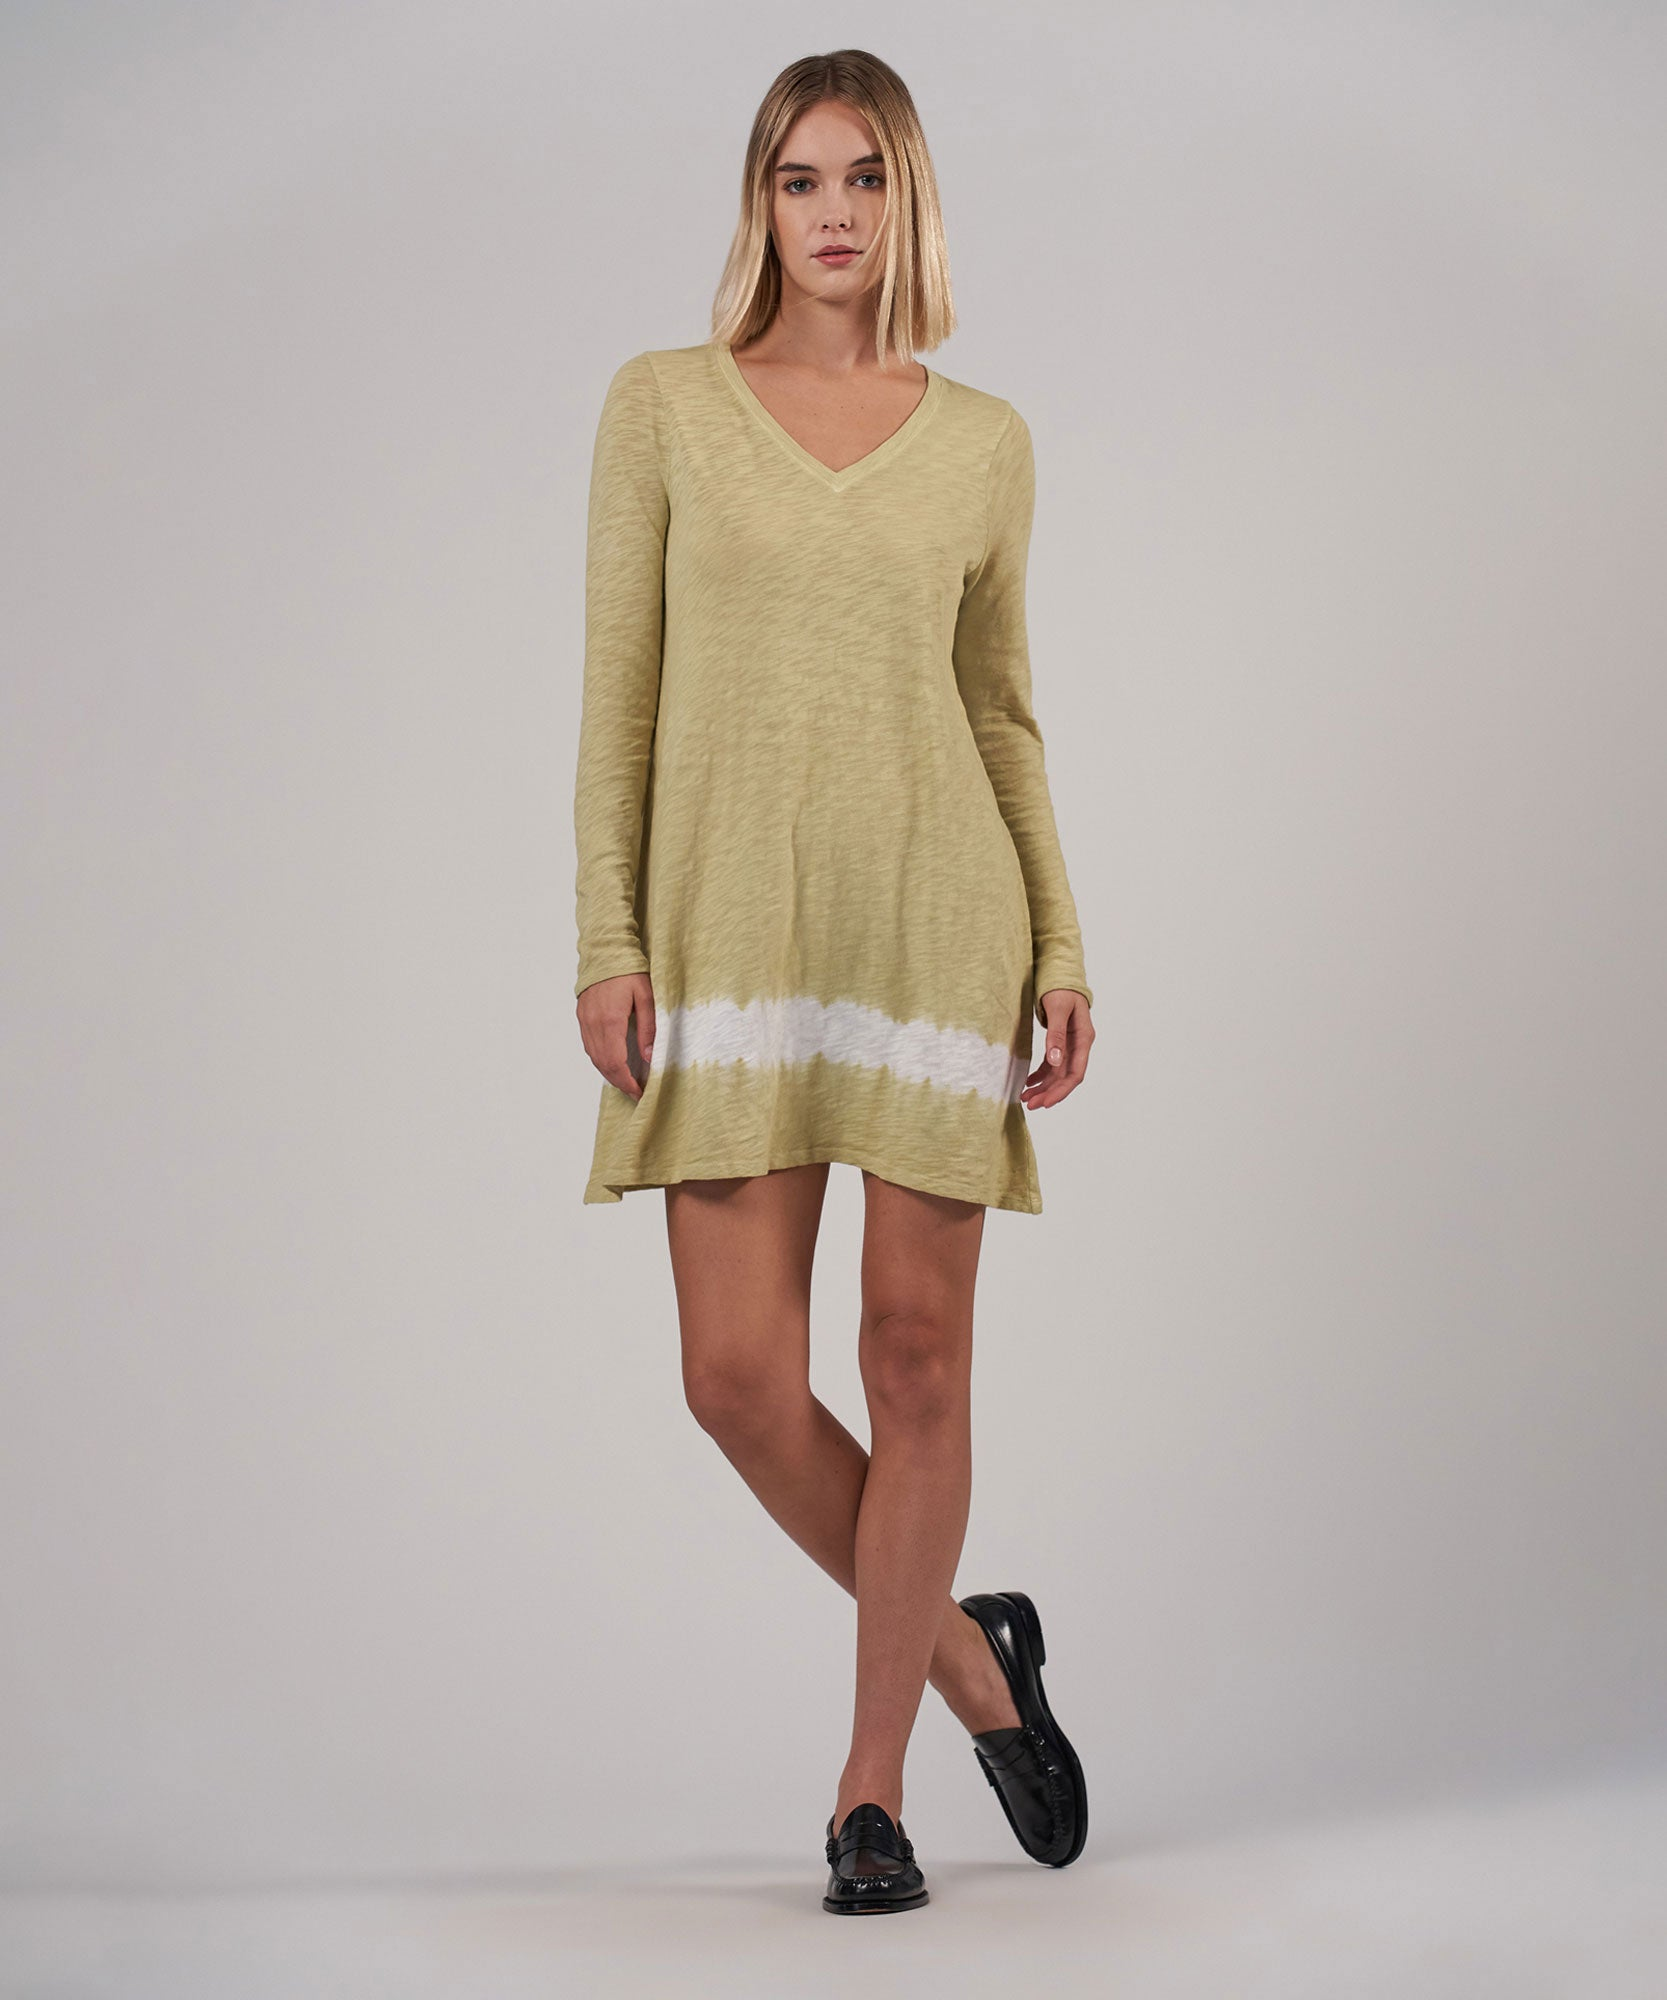 Putty/ Talc Combo Slub Jersey Long Sleeve V-Neck Dress - Women's Dress by ATM Anthony Thomas Melillo